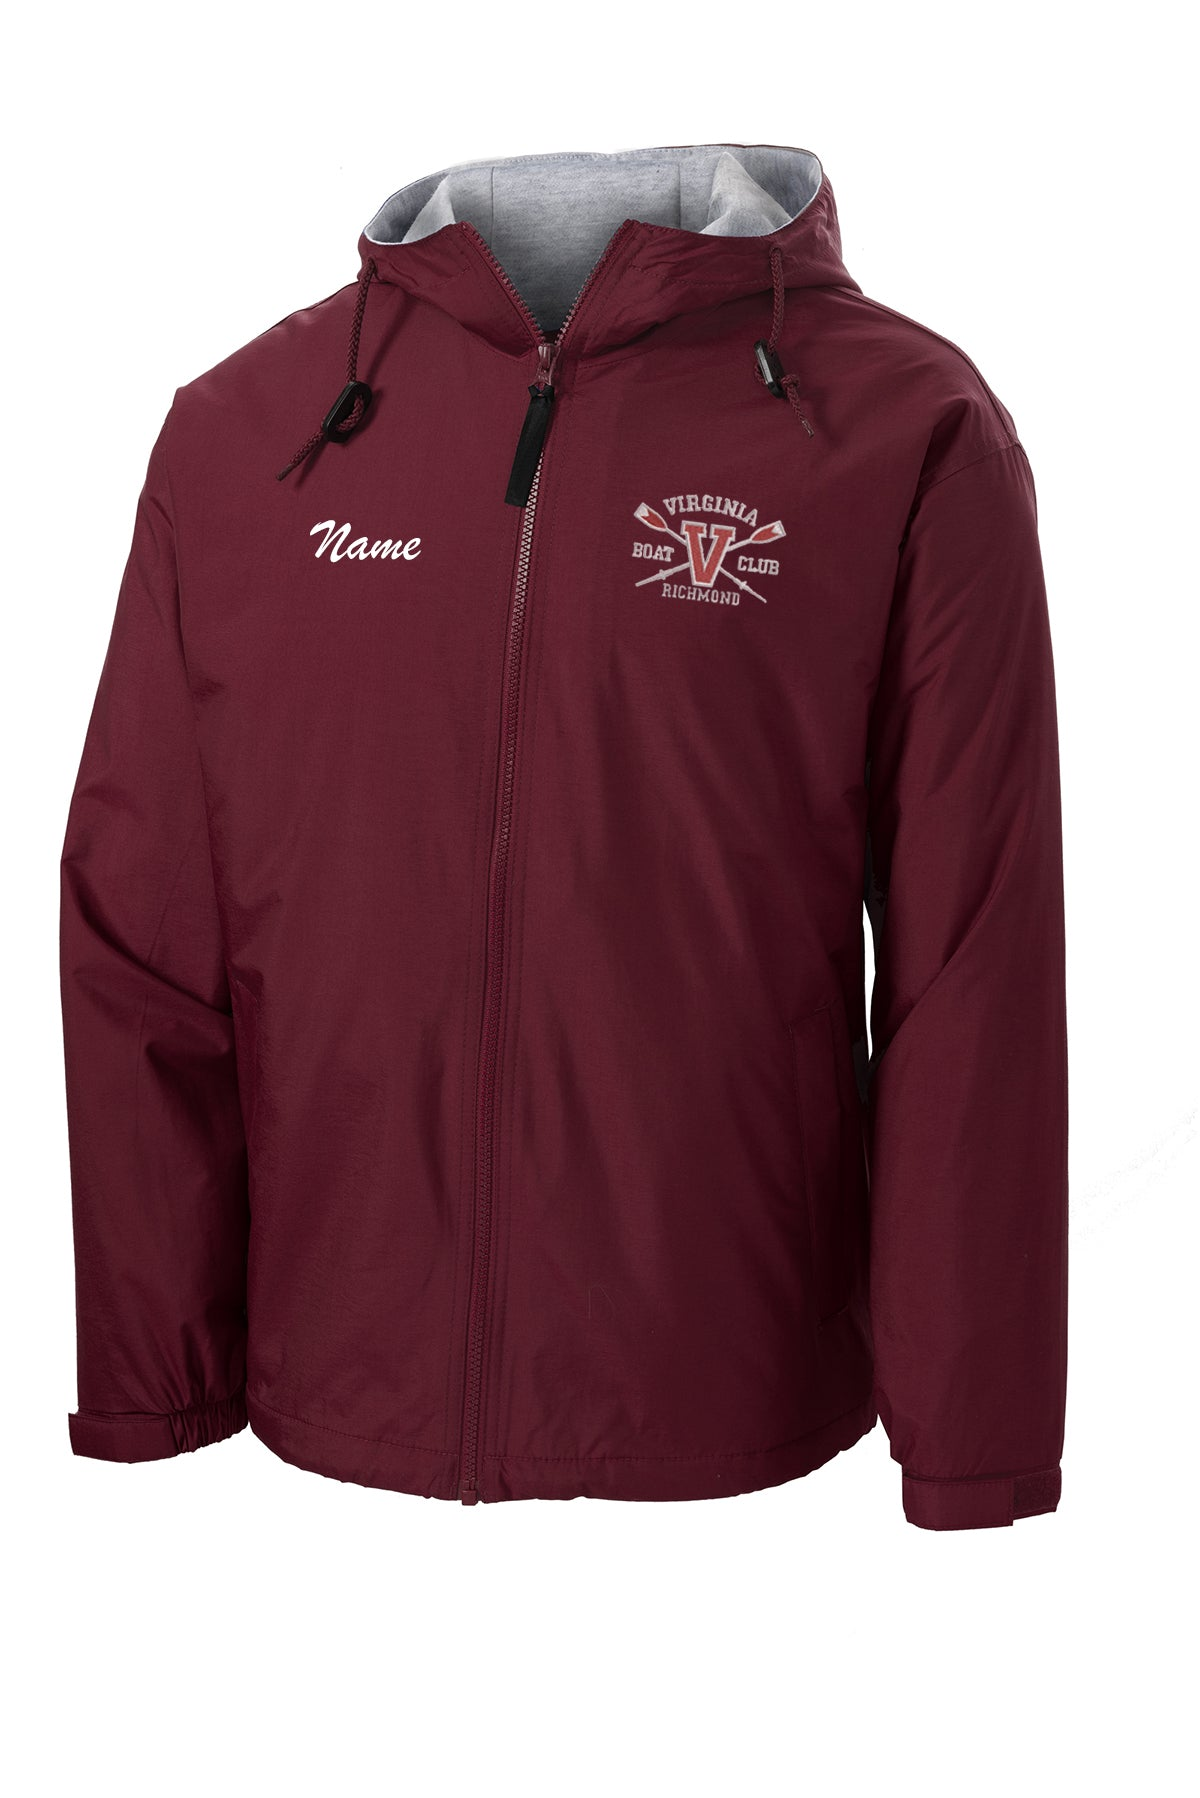 Virginia Boat Club Team Spectator Jacket